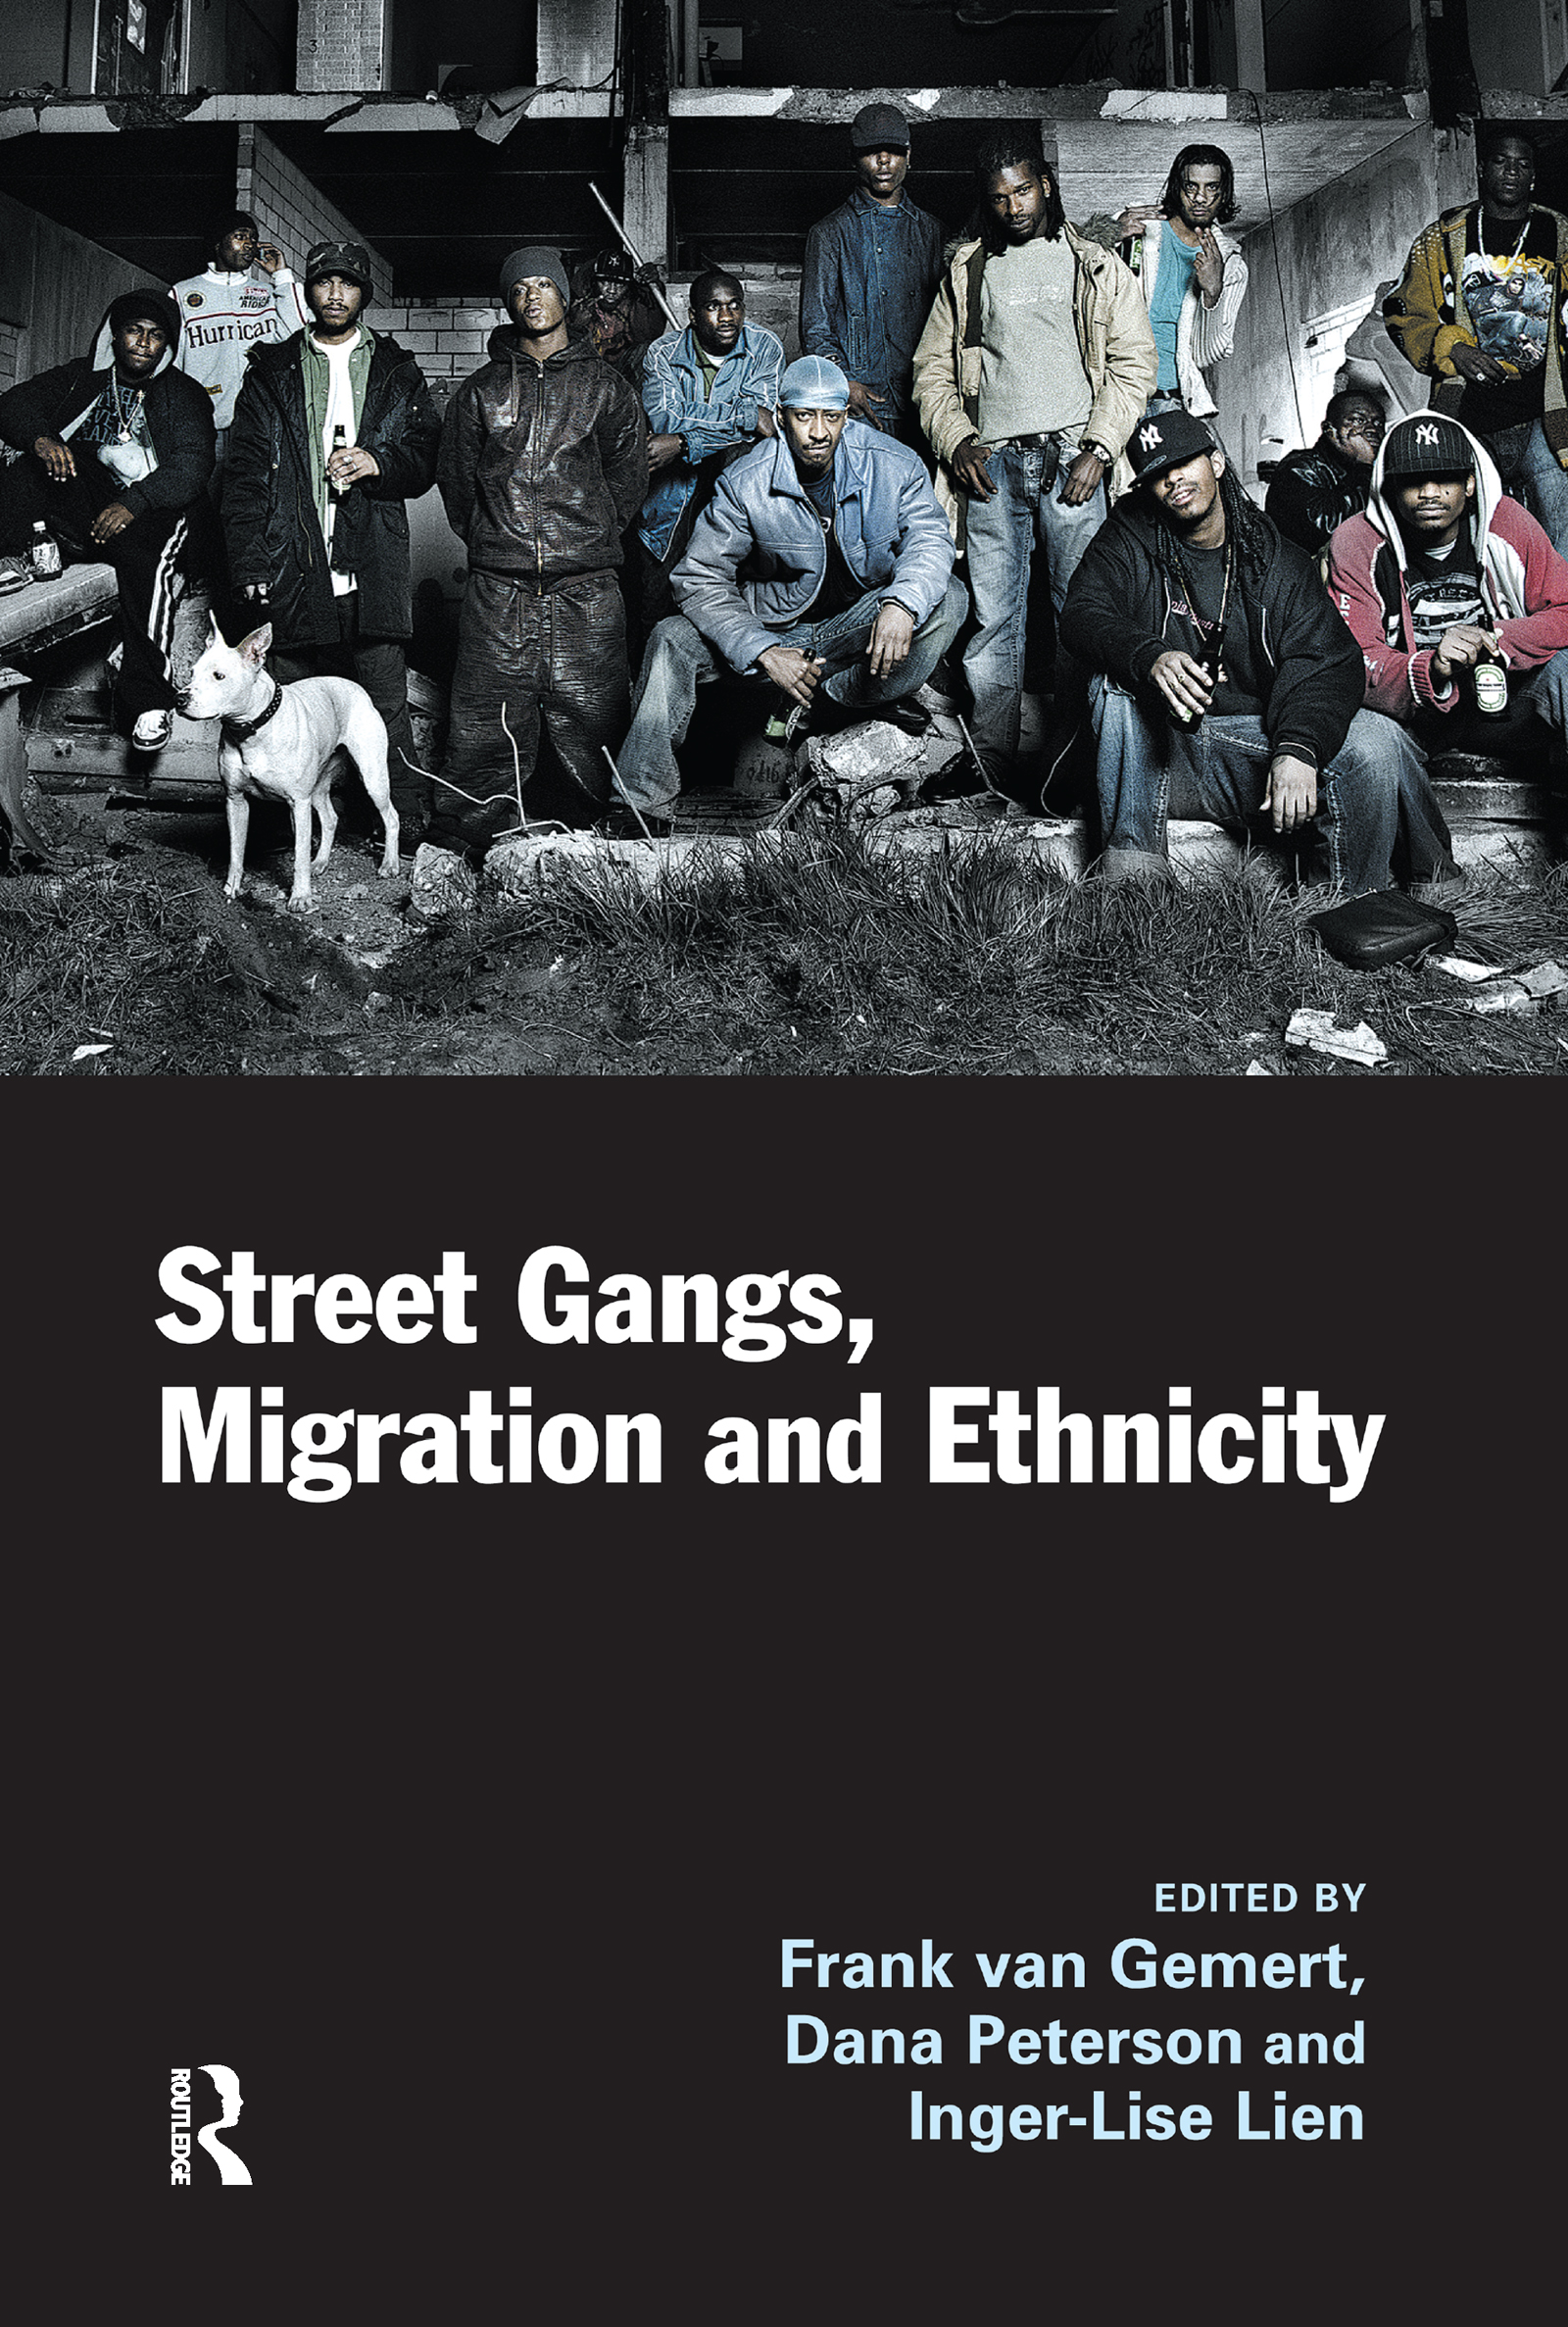 Concluding remarks: the roles of migration and ethnicity in street gang formation, involvement and response